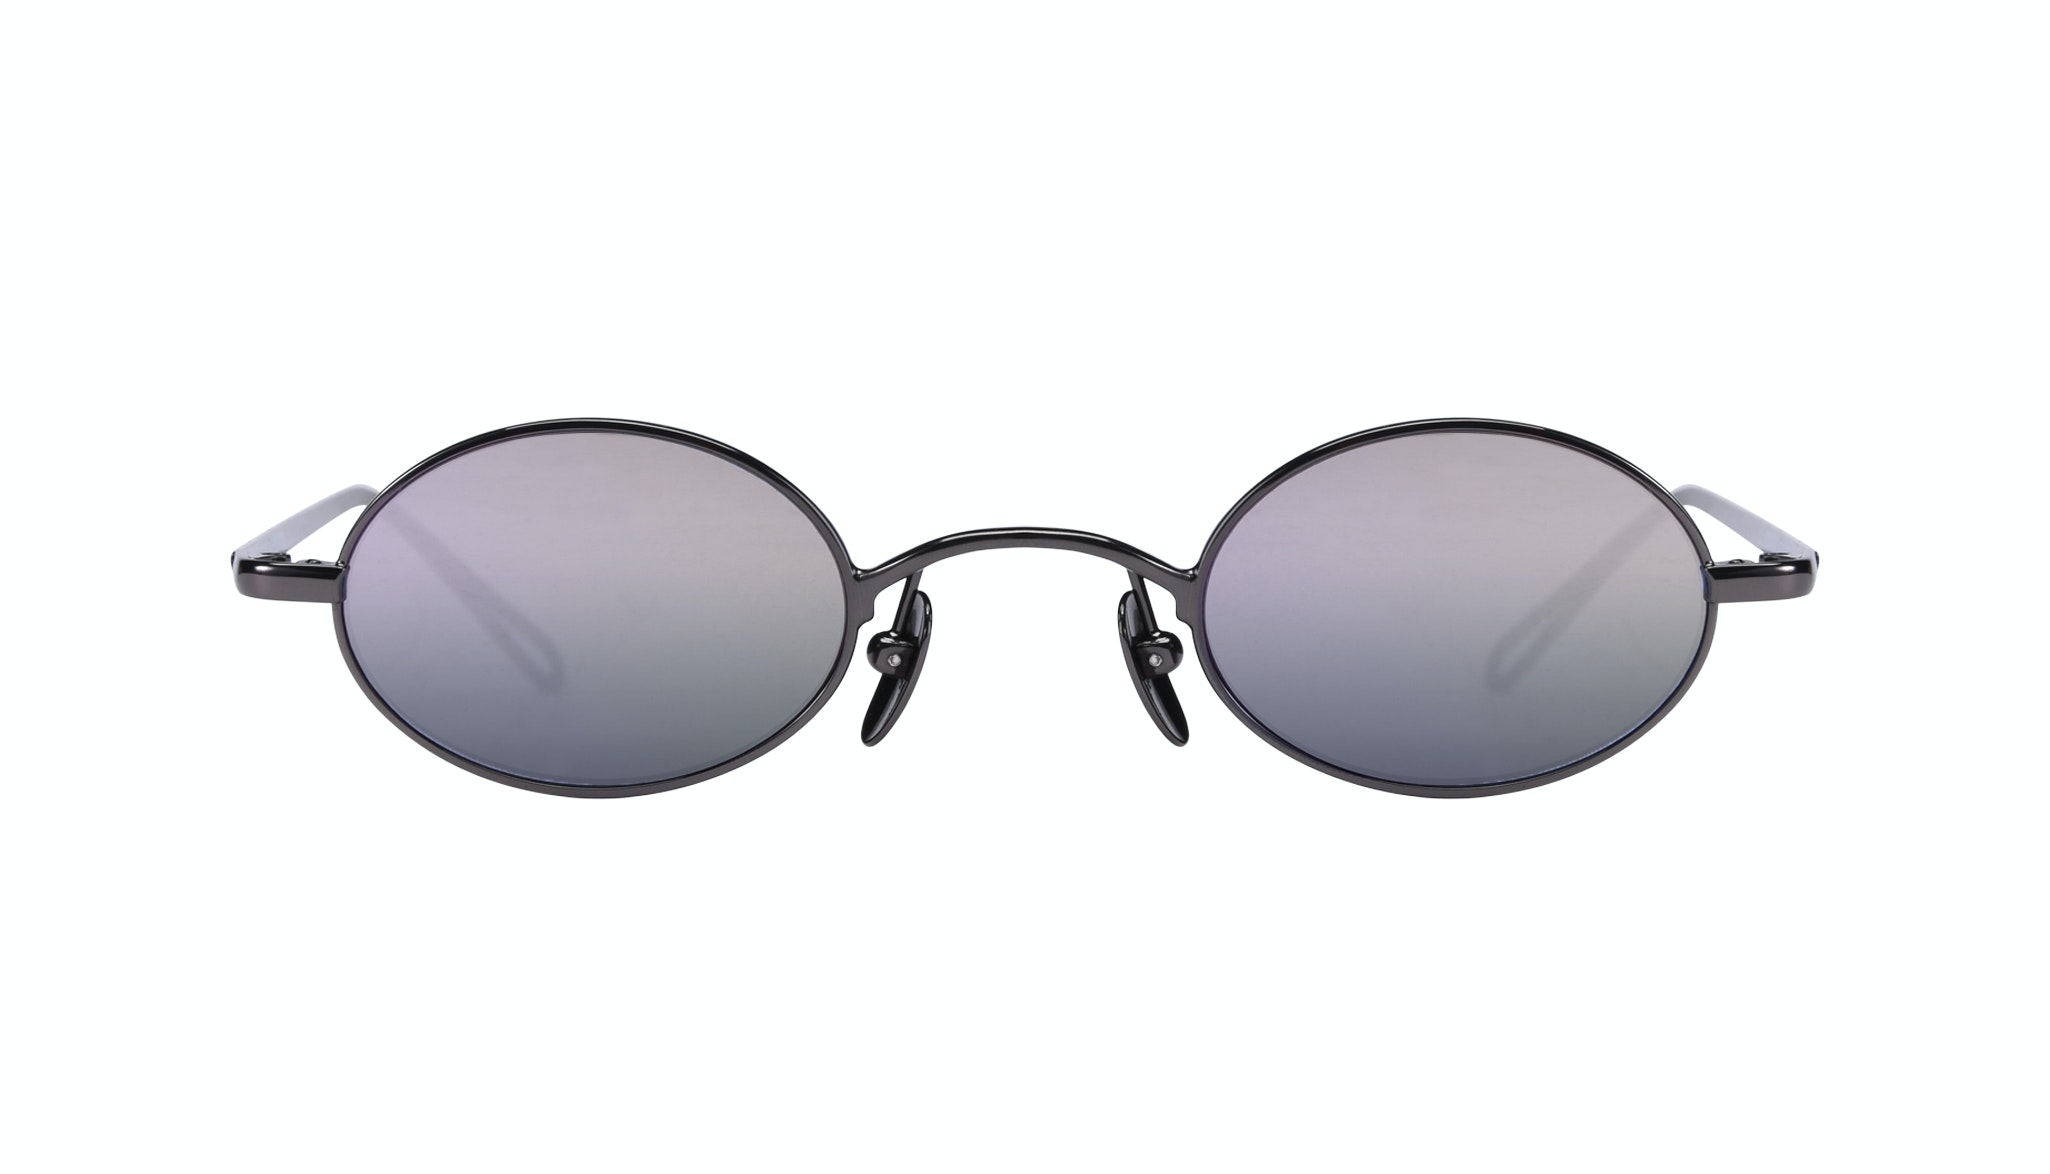 Affordable Fashion Glasses Round Sunglasses Women Stellar Shadow Front